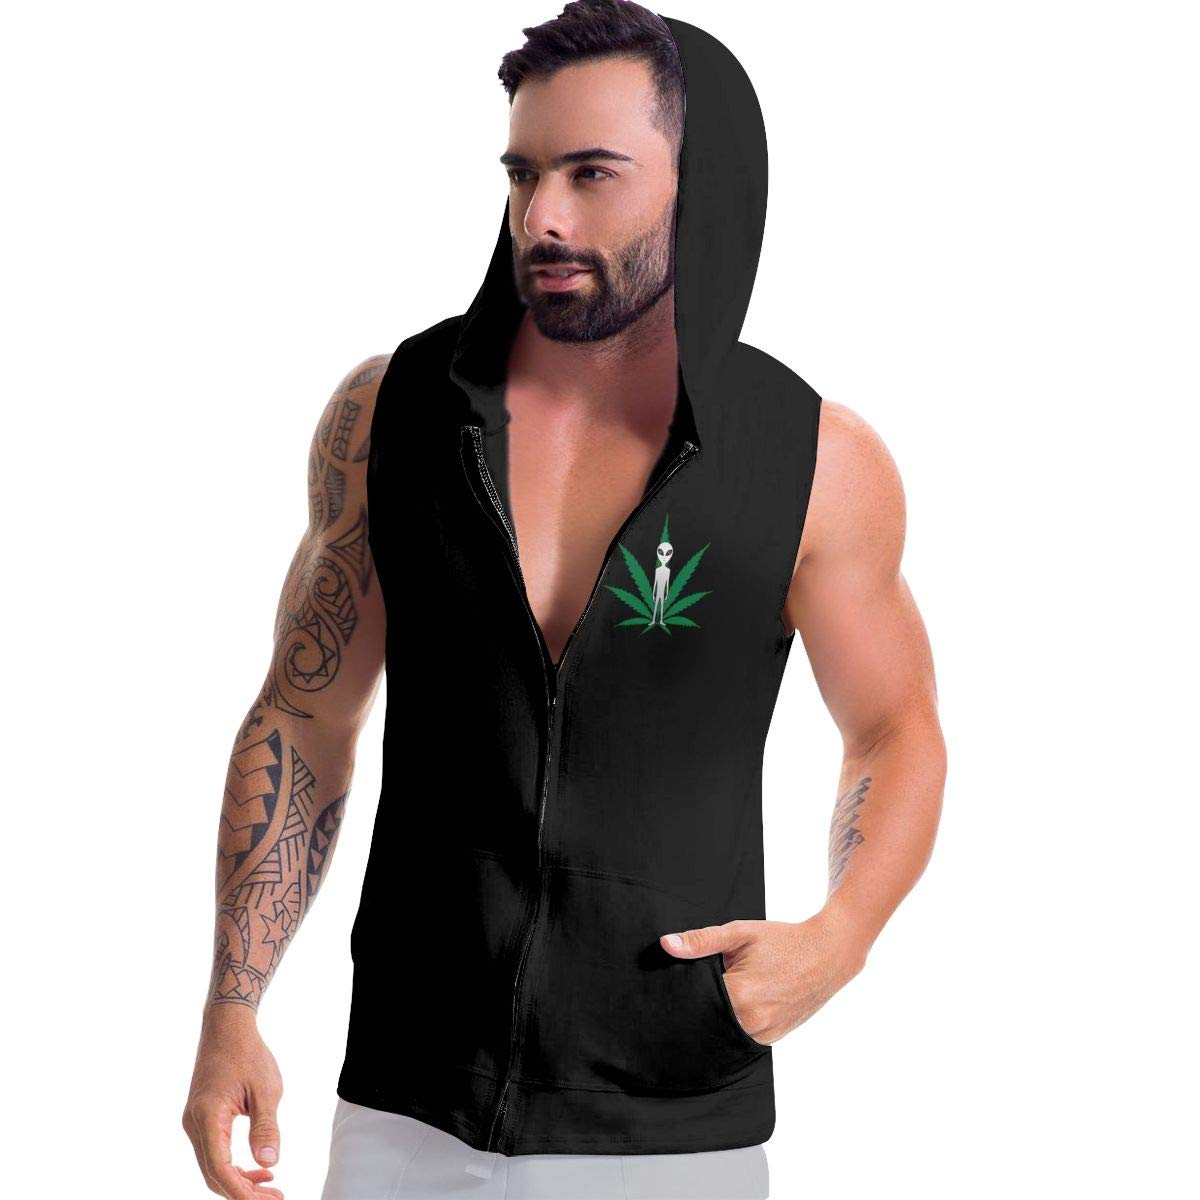 Alien Cannabis Leaf Mens Sleeveless Full Zip Hooded Sweater Active Workout Jacket